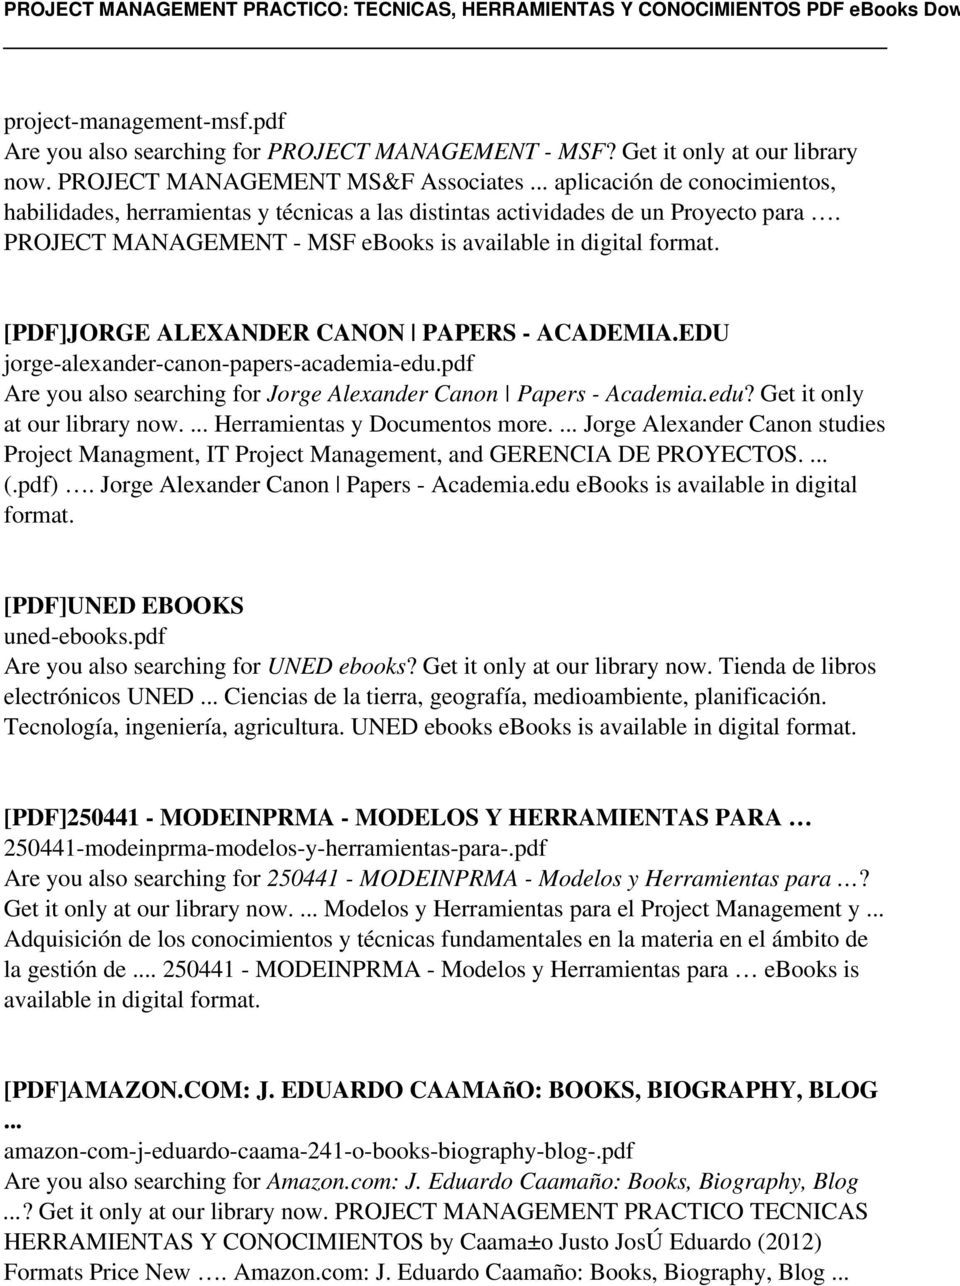 PROJECT MANAGEMENT - MSF ebooks is available in digital [PDF]JORGE ALEXANDER CANON PAPERS - ACADEMIA.EDU jorge-alexander-canon-papers-academia-edu.